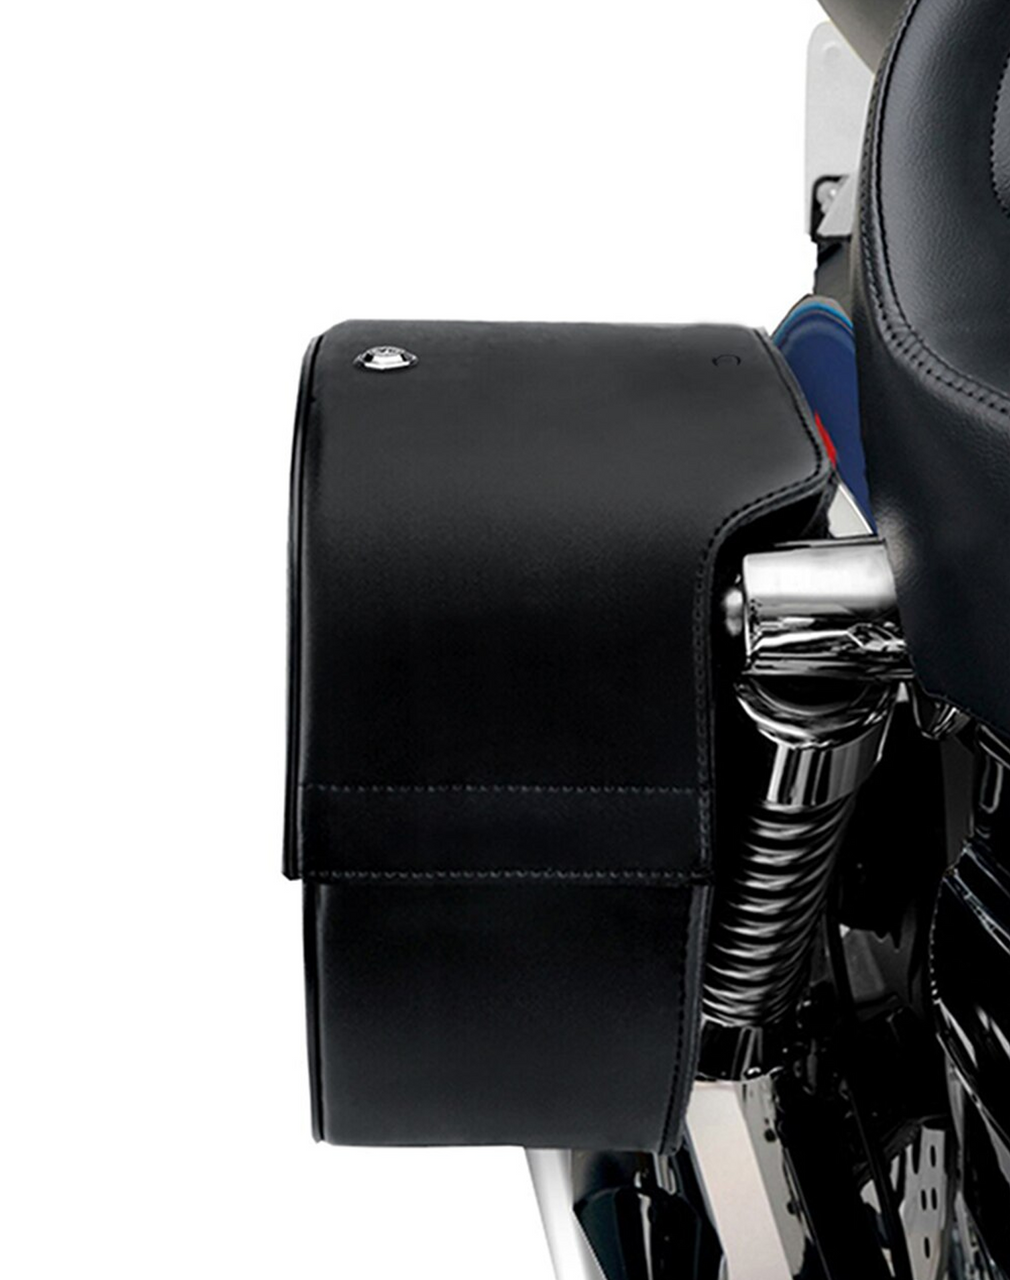 Honda CMX 250C Rebel 250 Charger Side Pocket With Shock Cutout Motorcycle Saddlebags Shock Cutout View